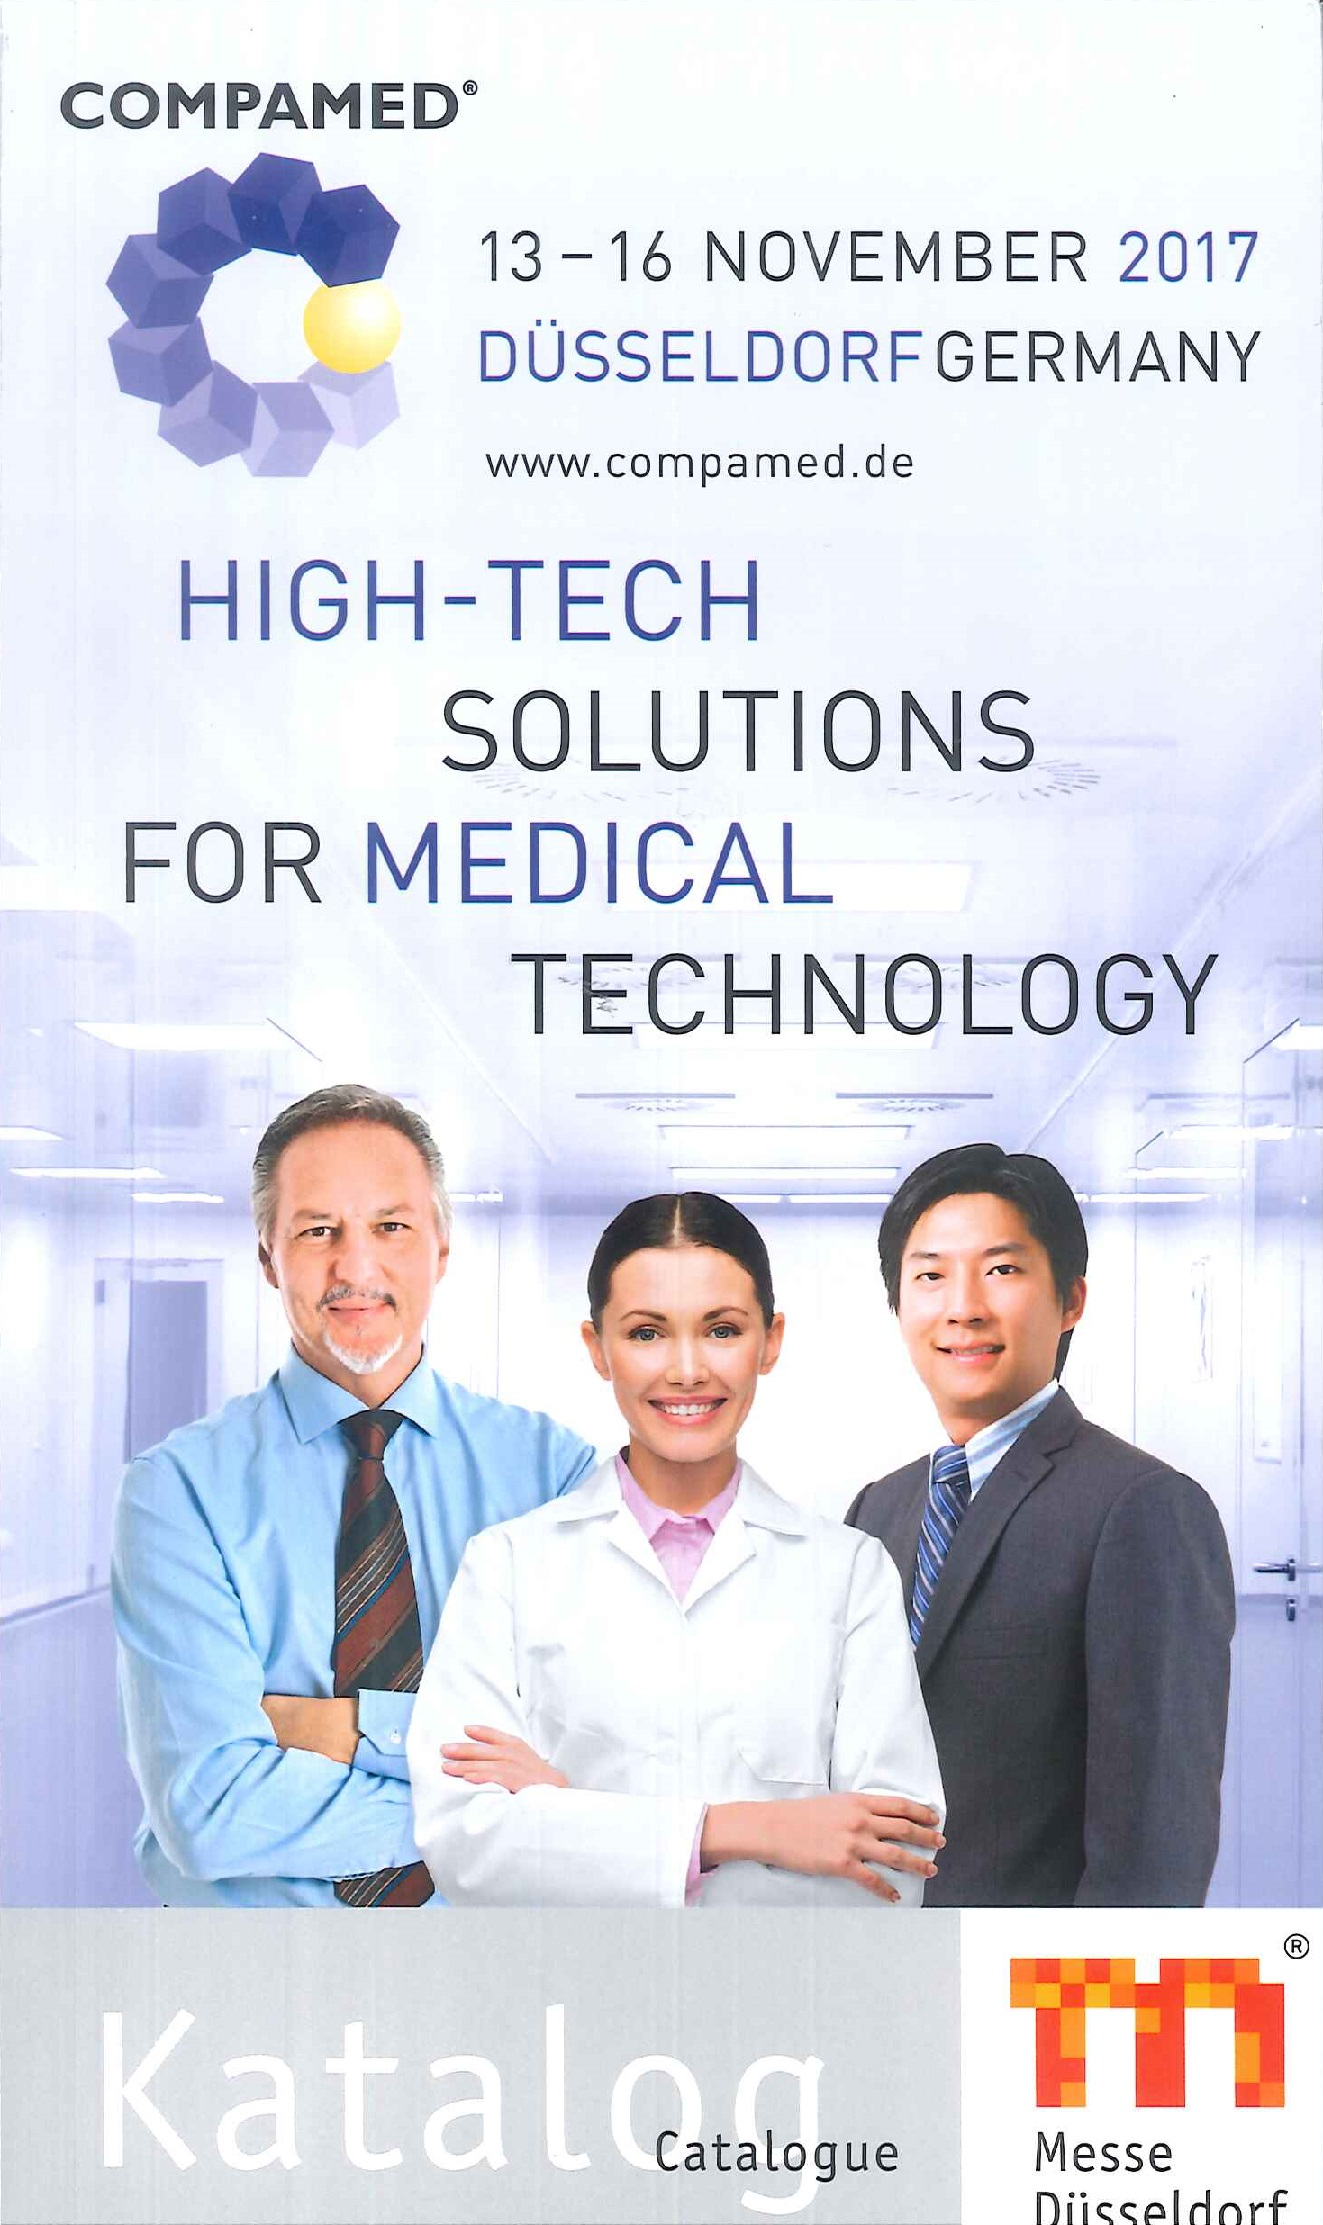 COMPAMED.Catalogue.2017:high-tech solutions for medical technology